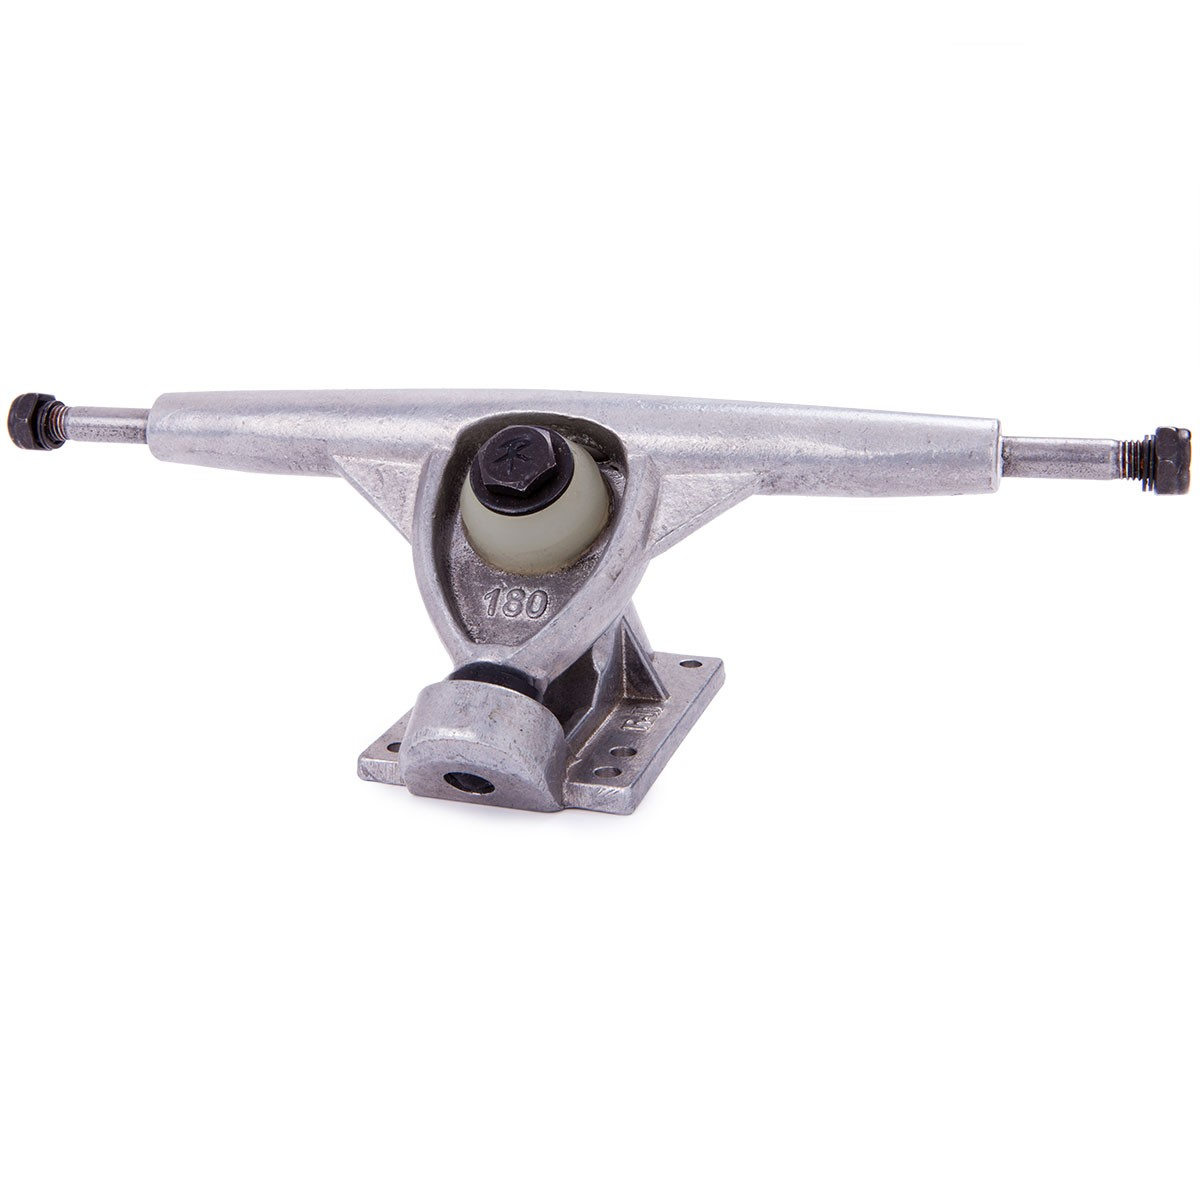 Randal R-II 180mm Skateboard Truck - 42 Degree - 1 Truck